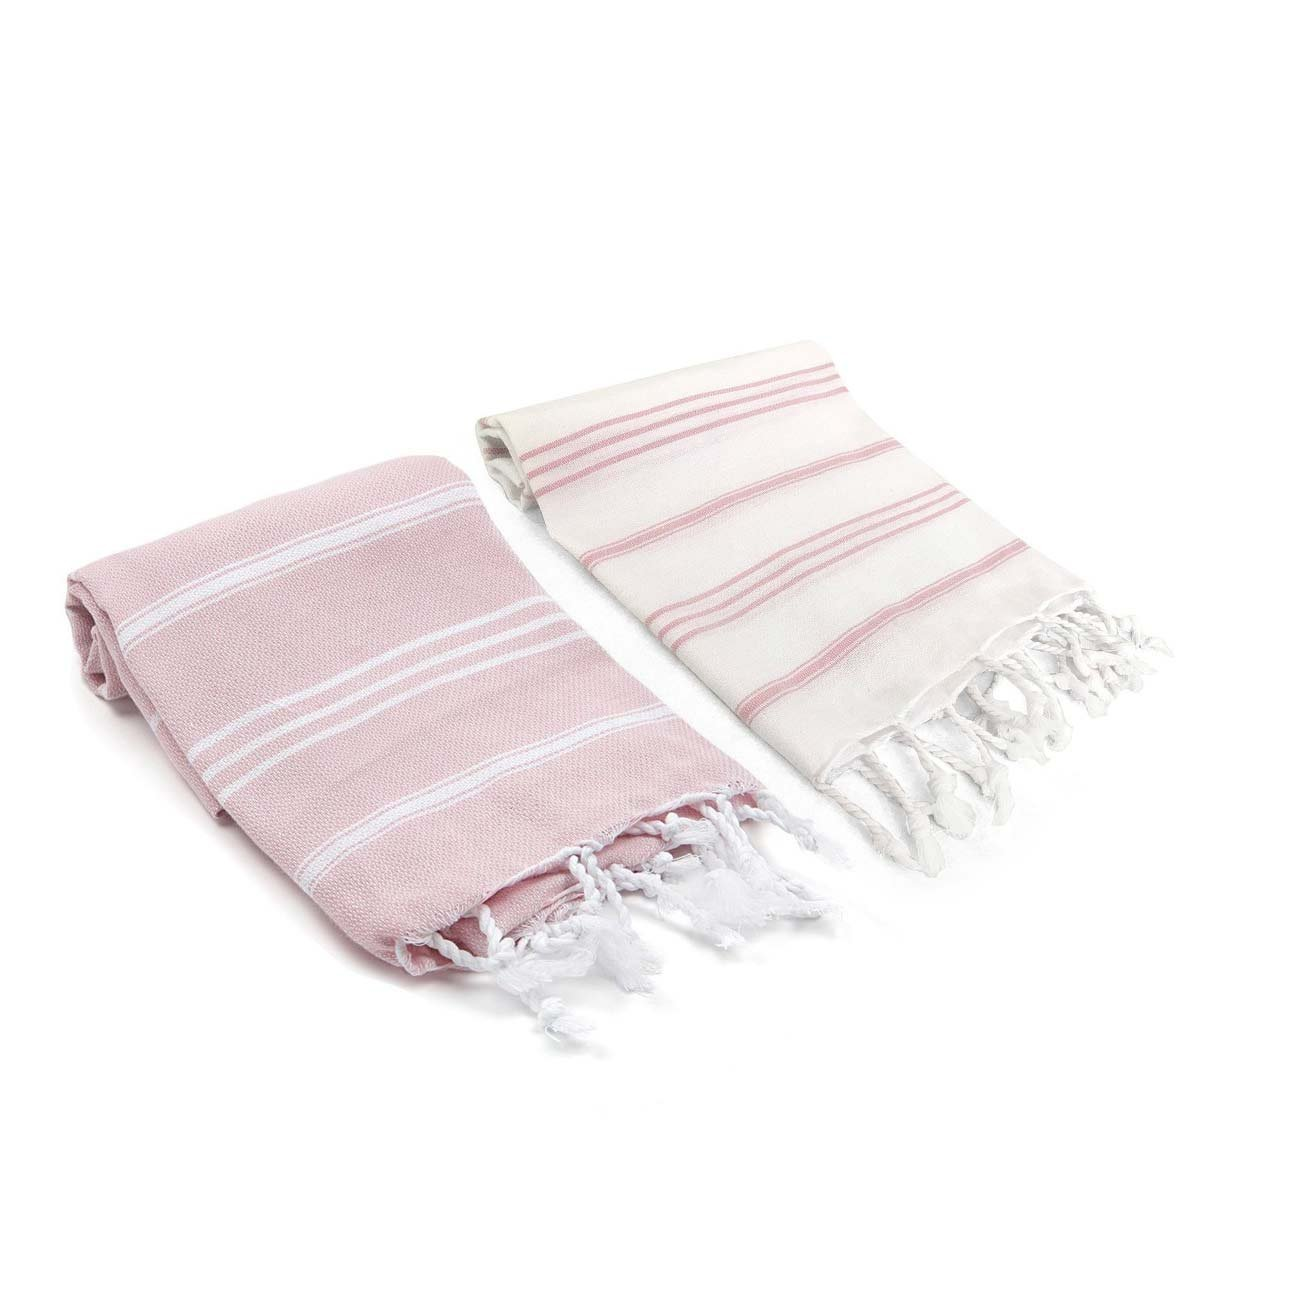 Blush Turkish Towel set for the beach with besties